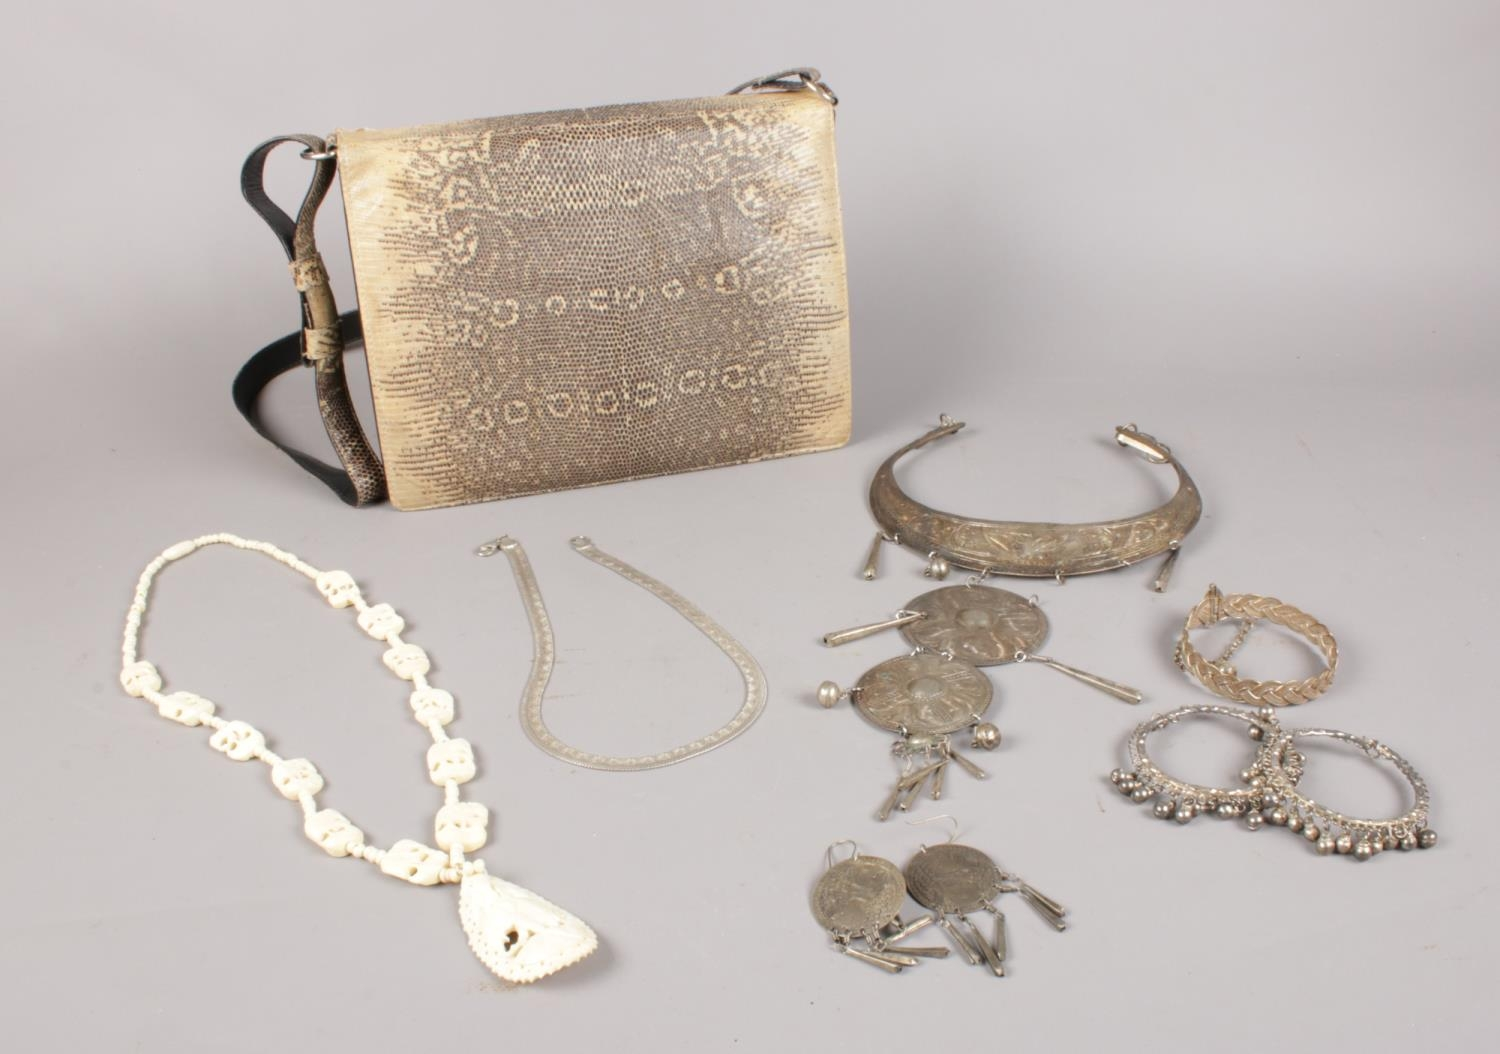 A group of costume jewellery & Python skin handbag. necklaces, earrings examples etc.